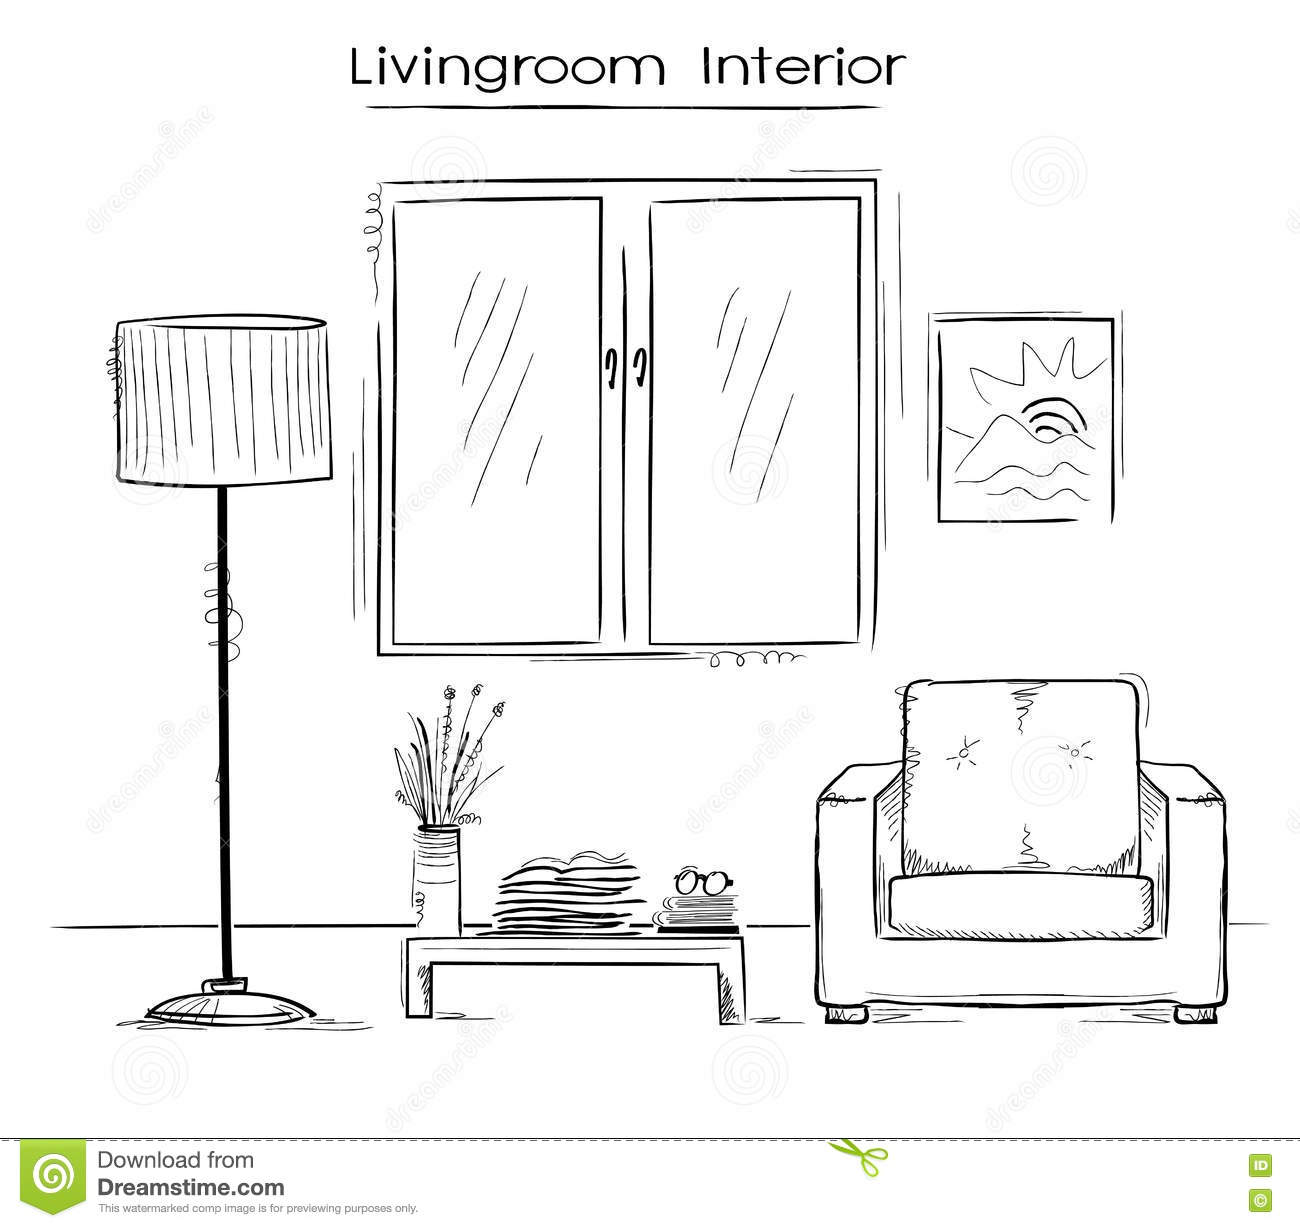 Sketchy Color Illustration Of Bedroom Interior.Vector Hand